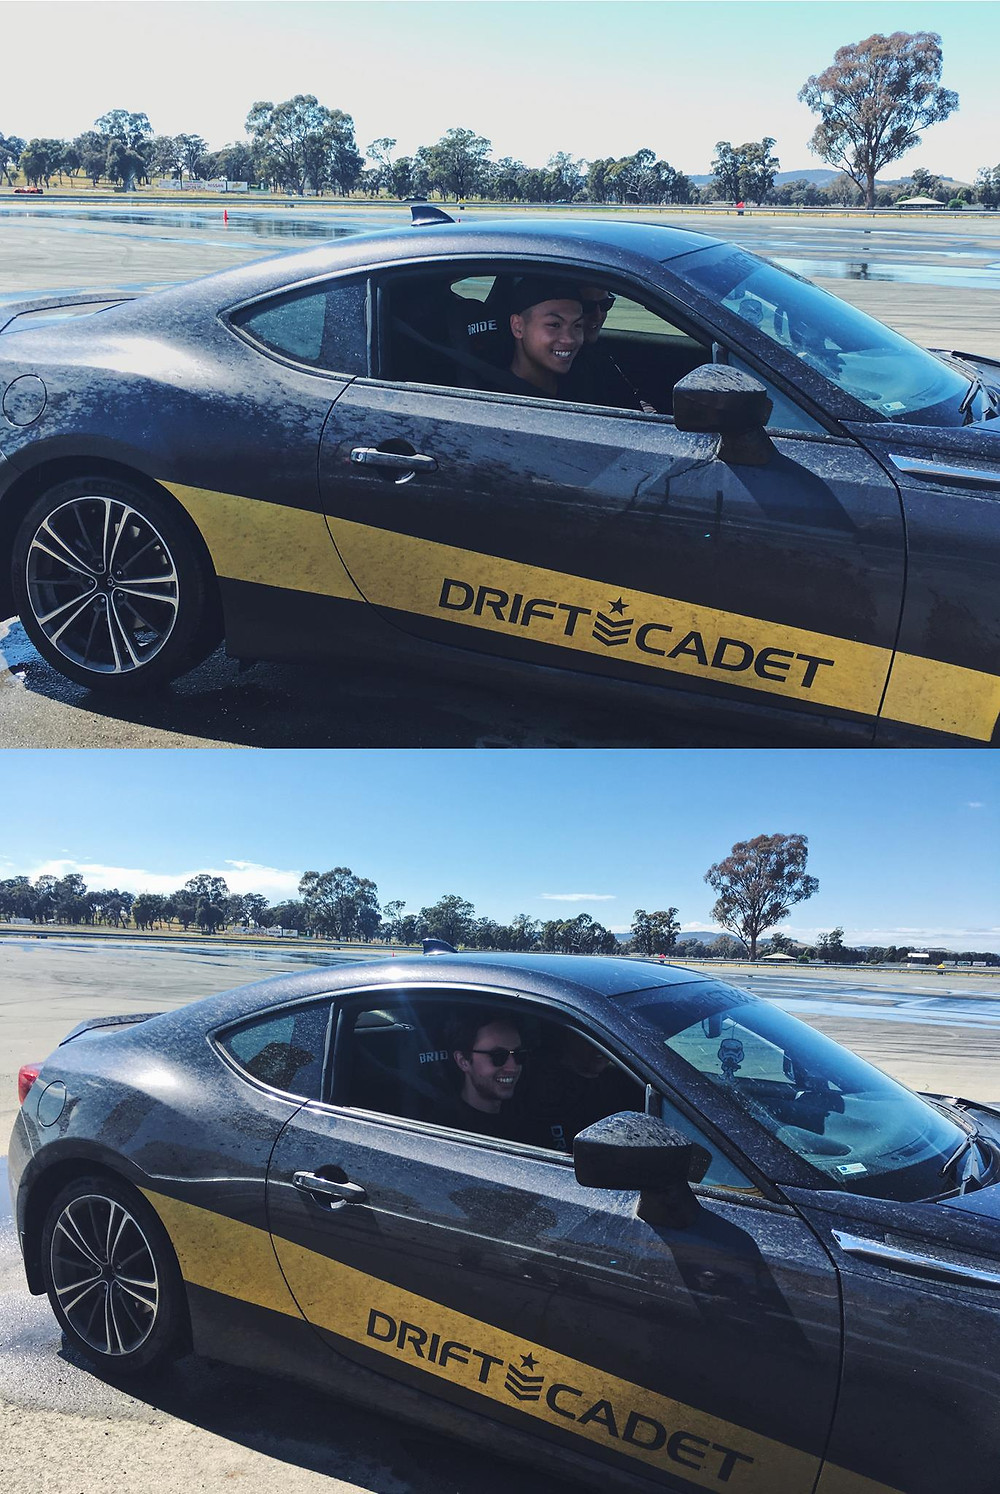 Drift Cadet Drift School Beginners